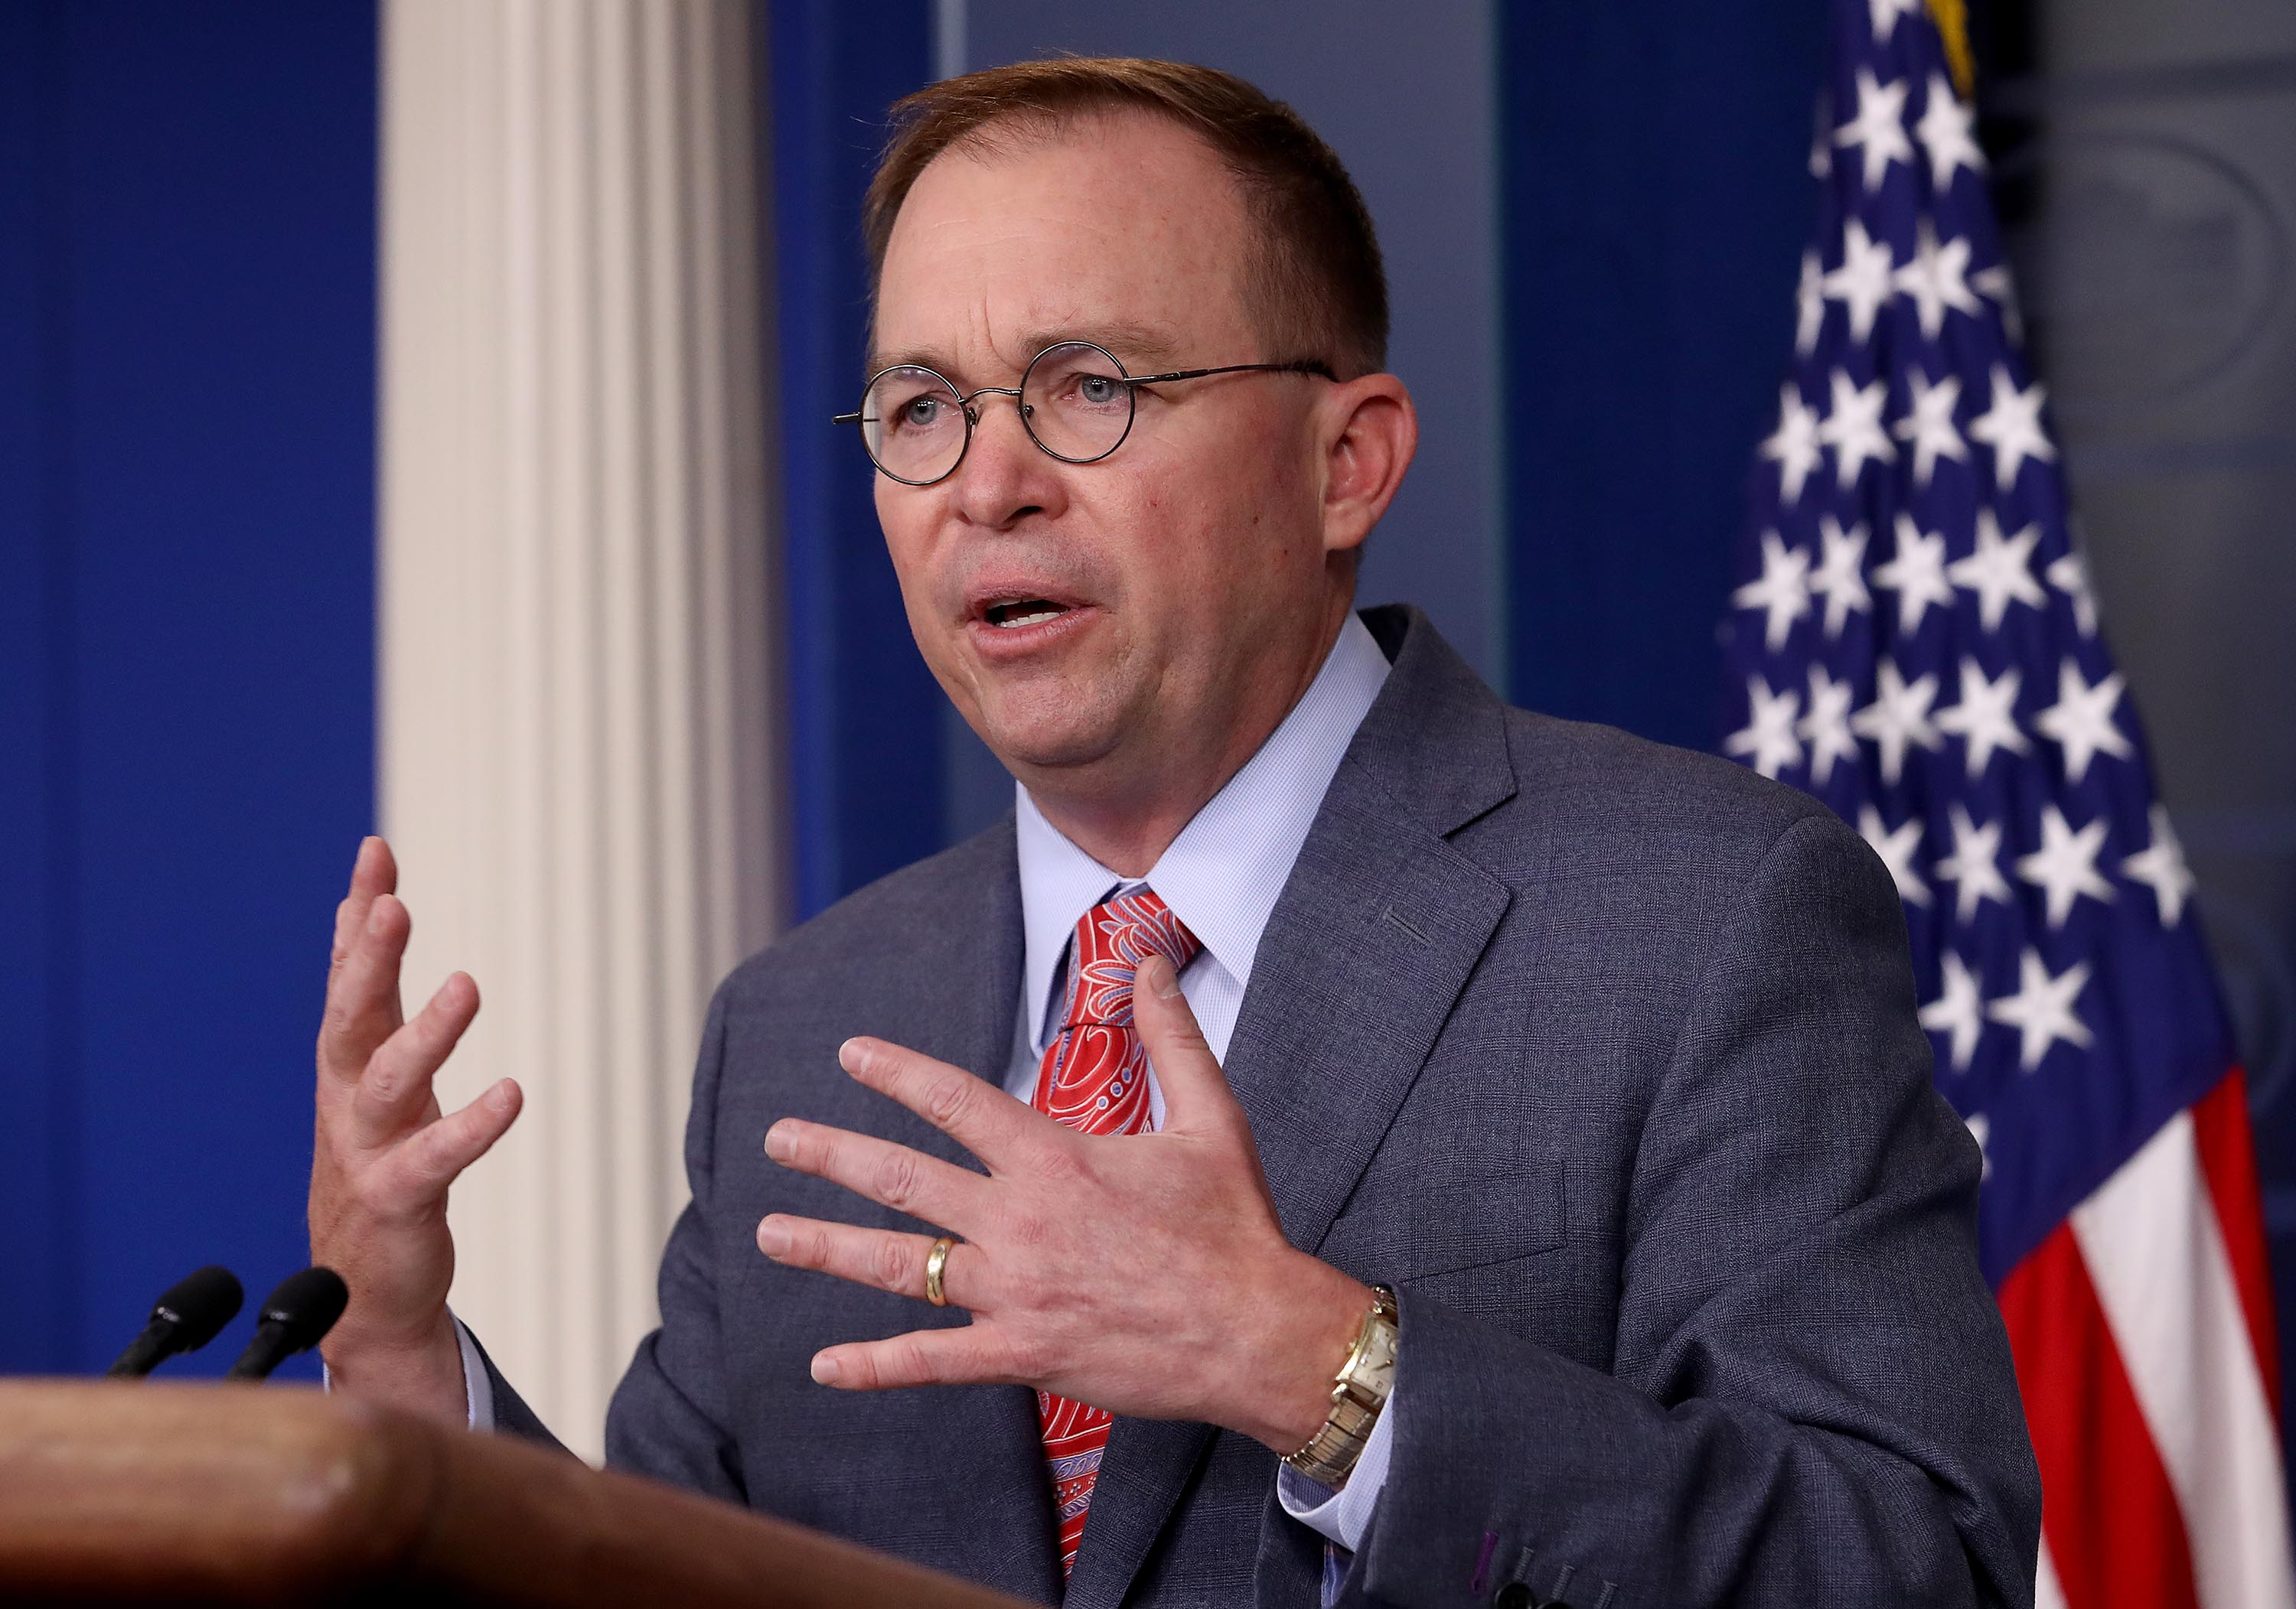 Mulvaney slams 'deep state' of government employees undermining Trump